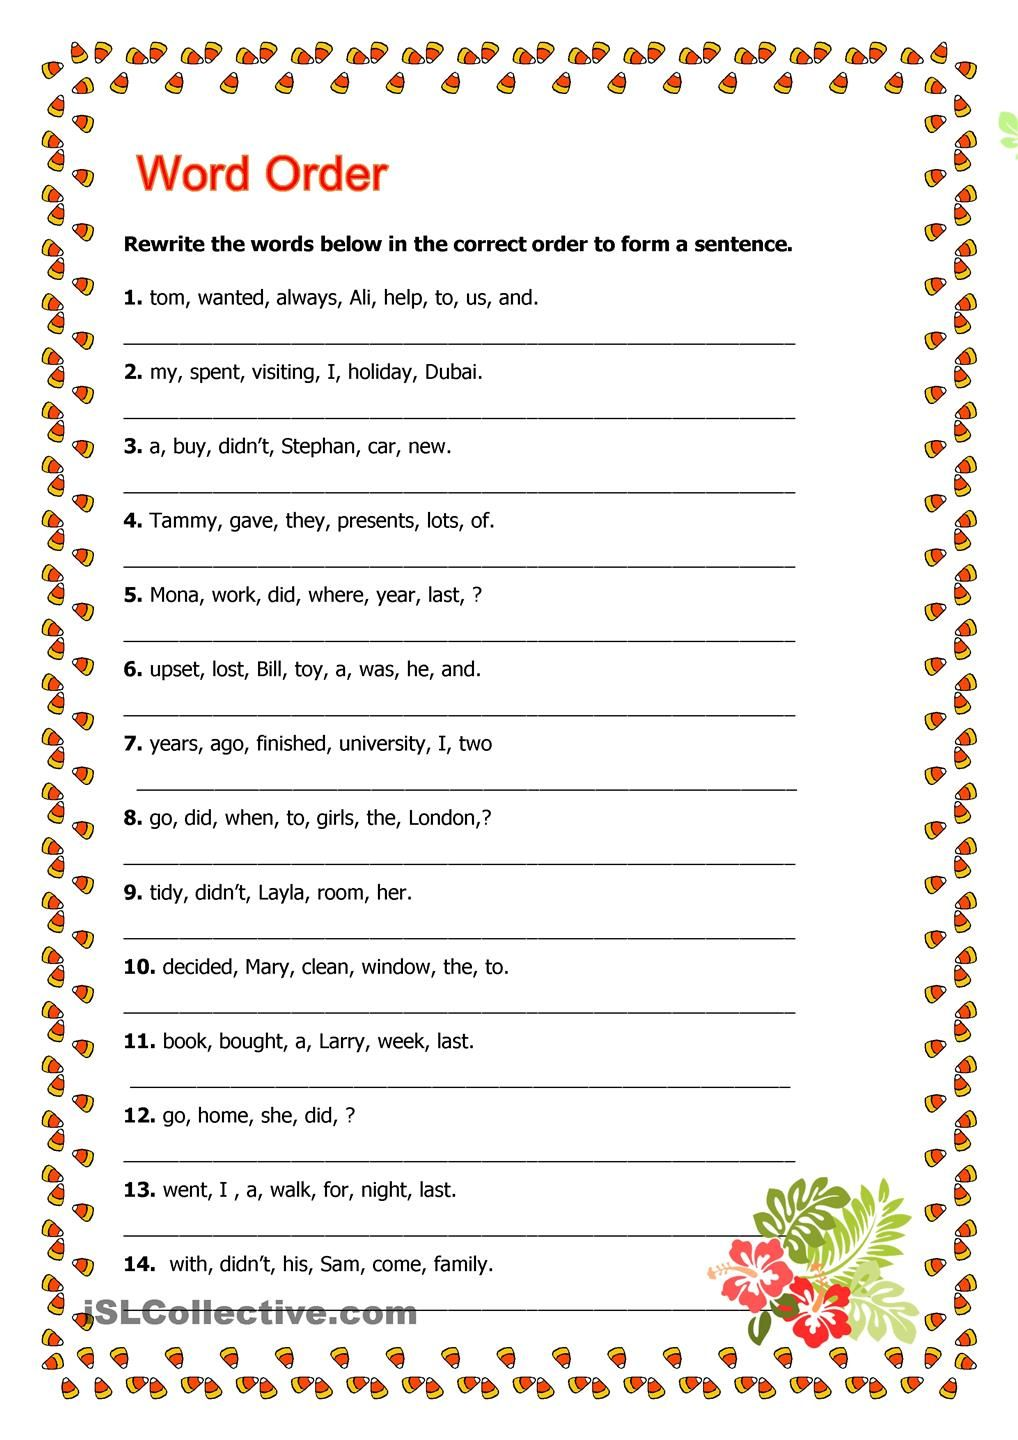 word order | inglés | Pinterest | Word order, English and English ...